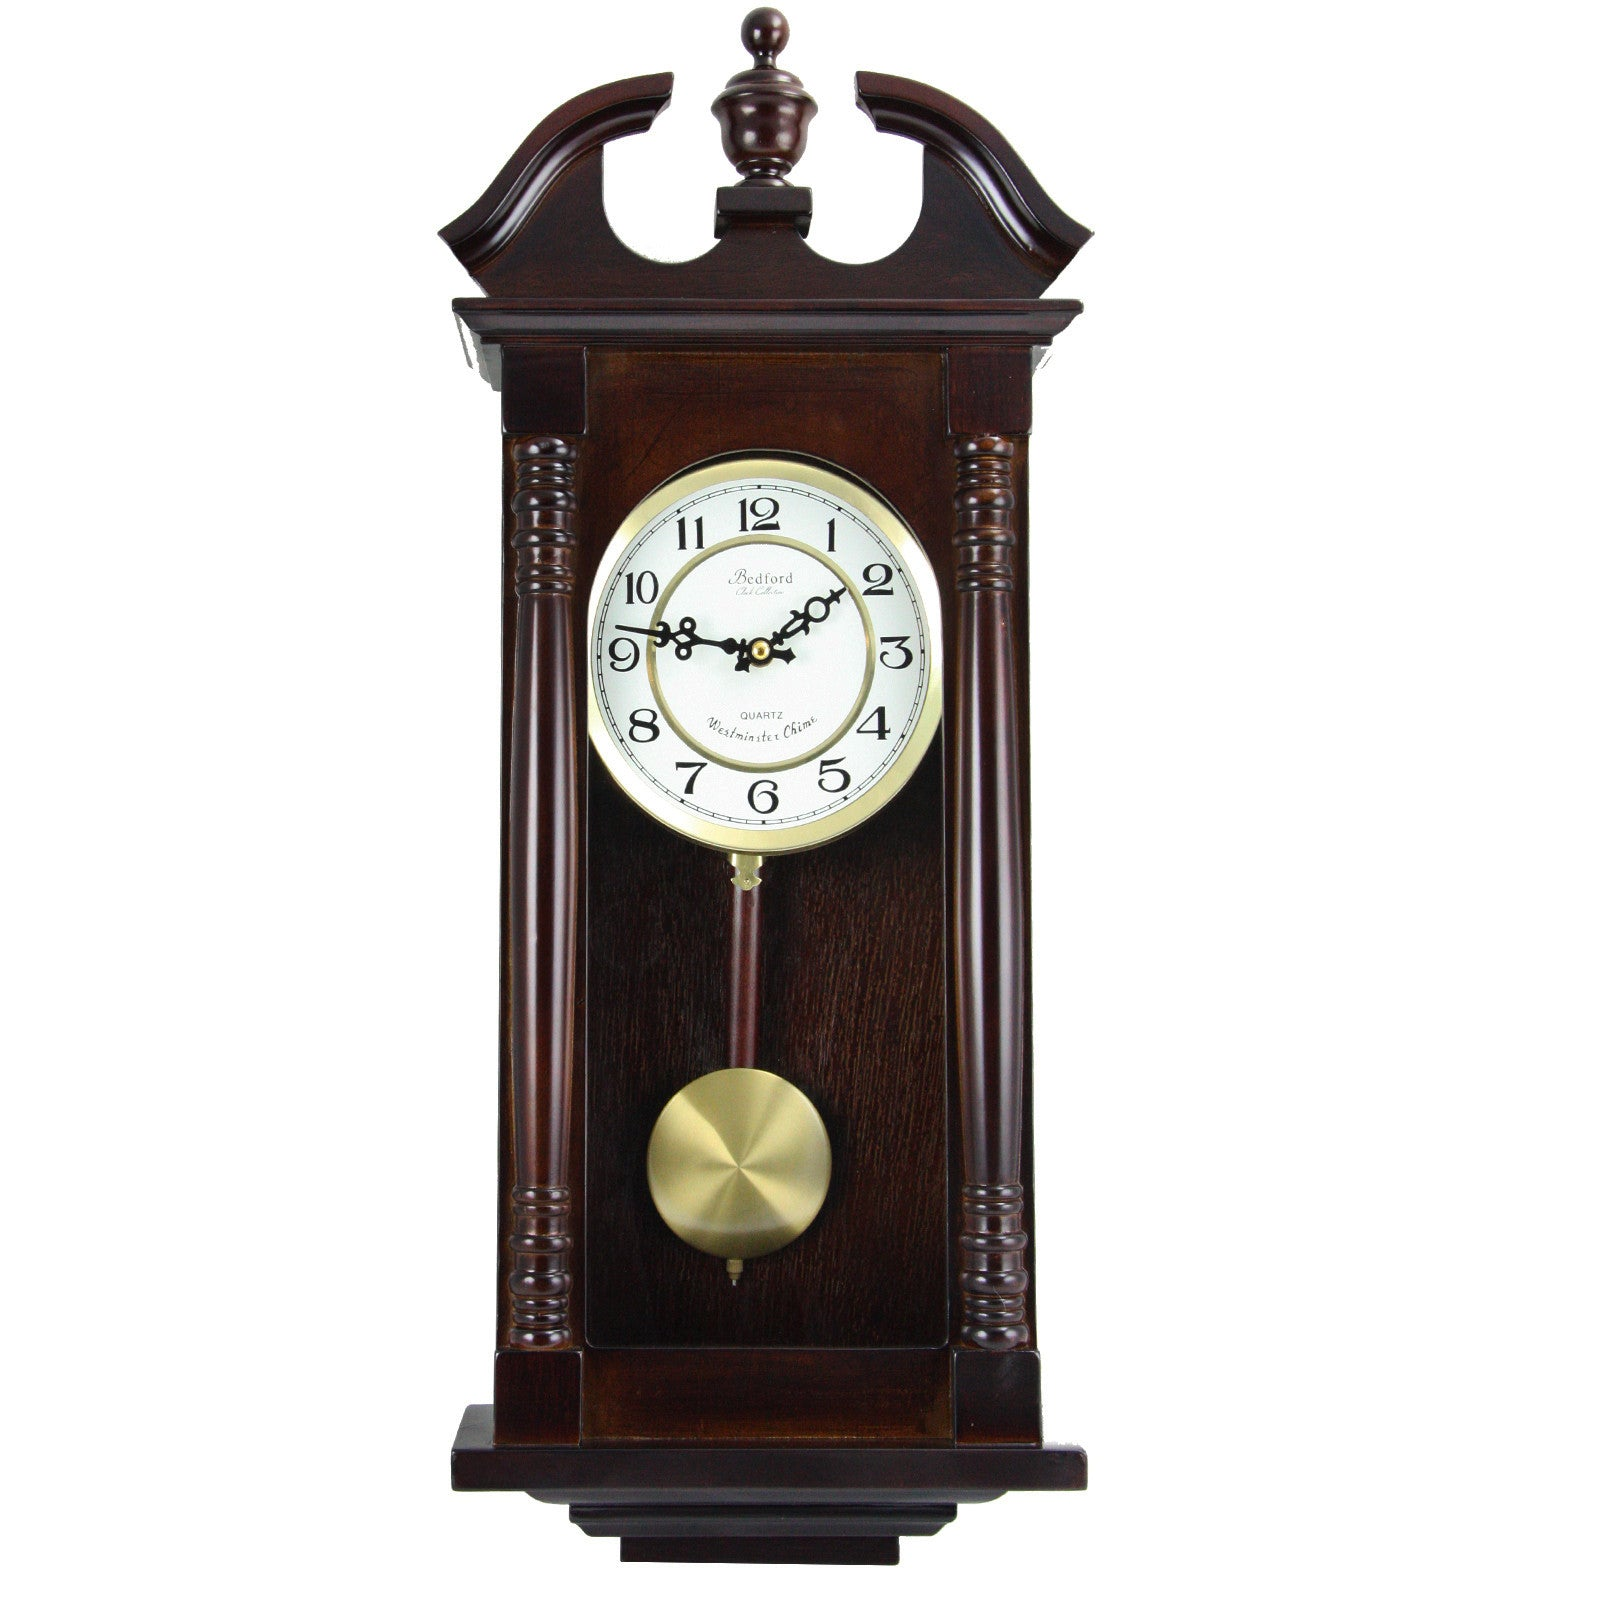 Shop unique wall clocks online clocks collection for sale bedford clock collection 275 classic chiming wall clock with swinging pendulum in cherry oak finish amipublicfo Images